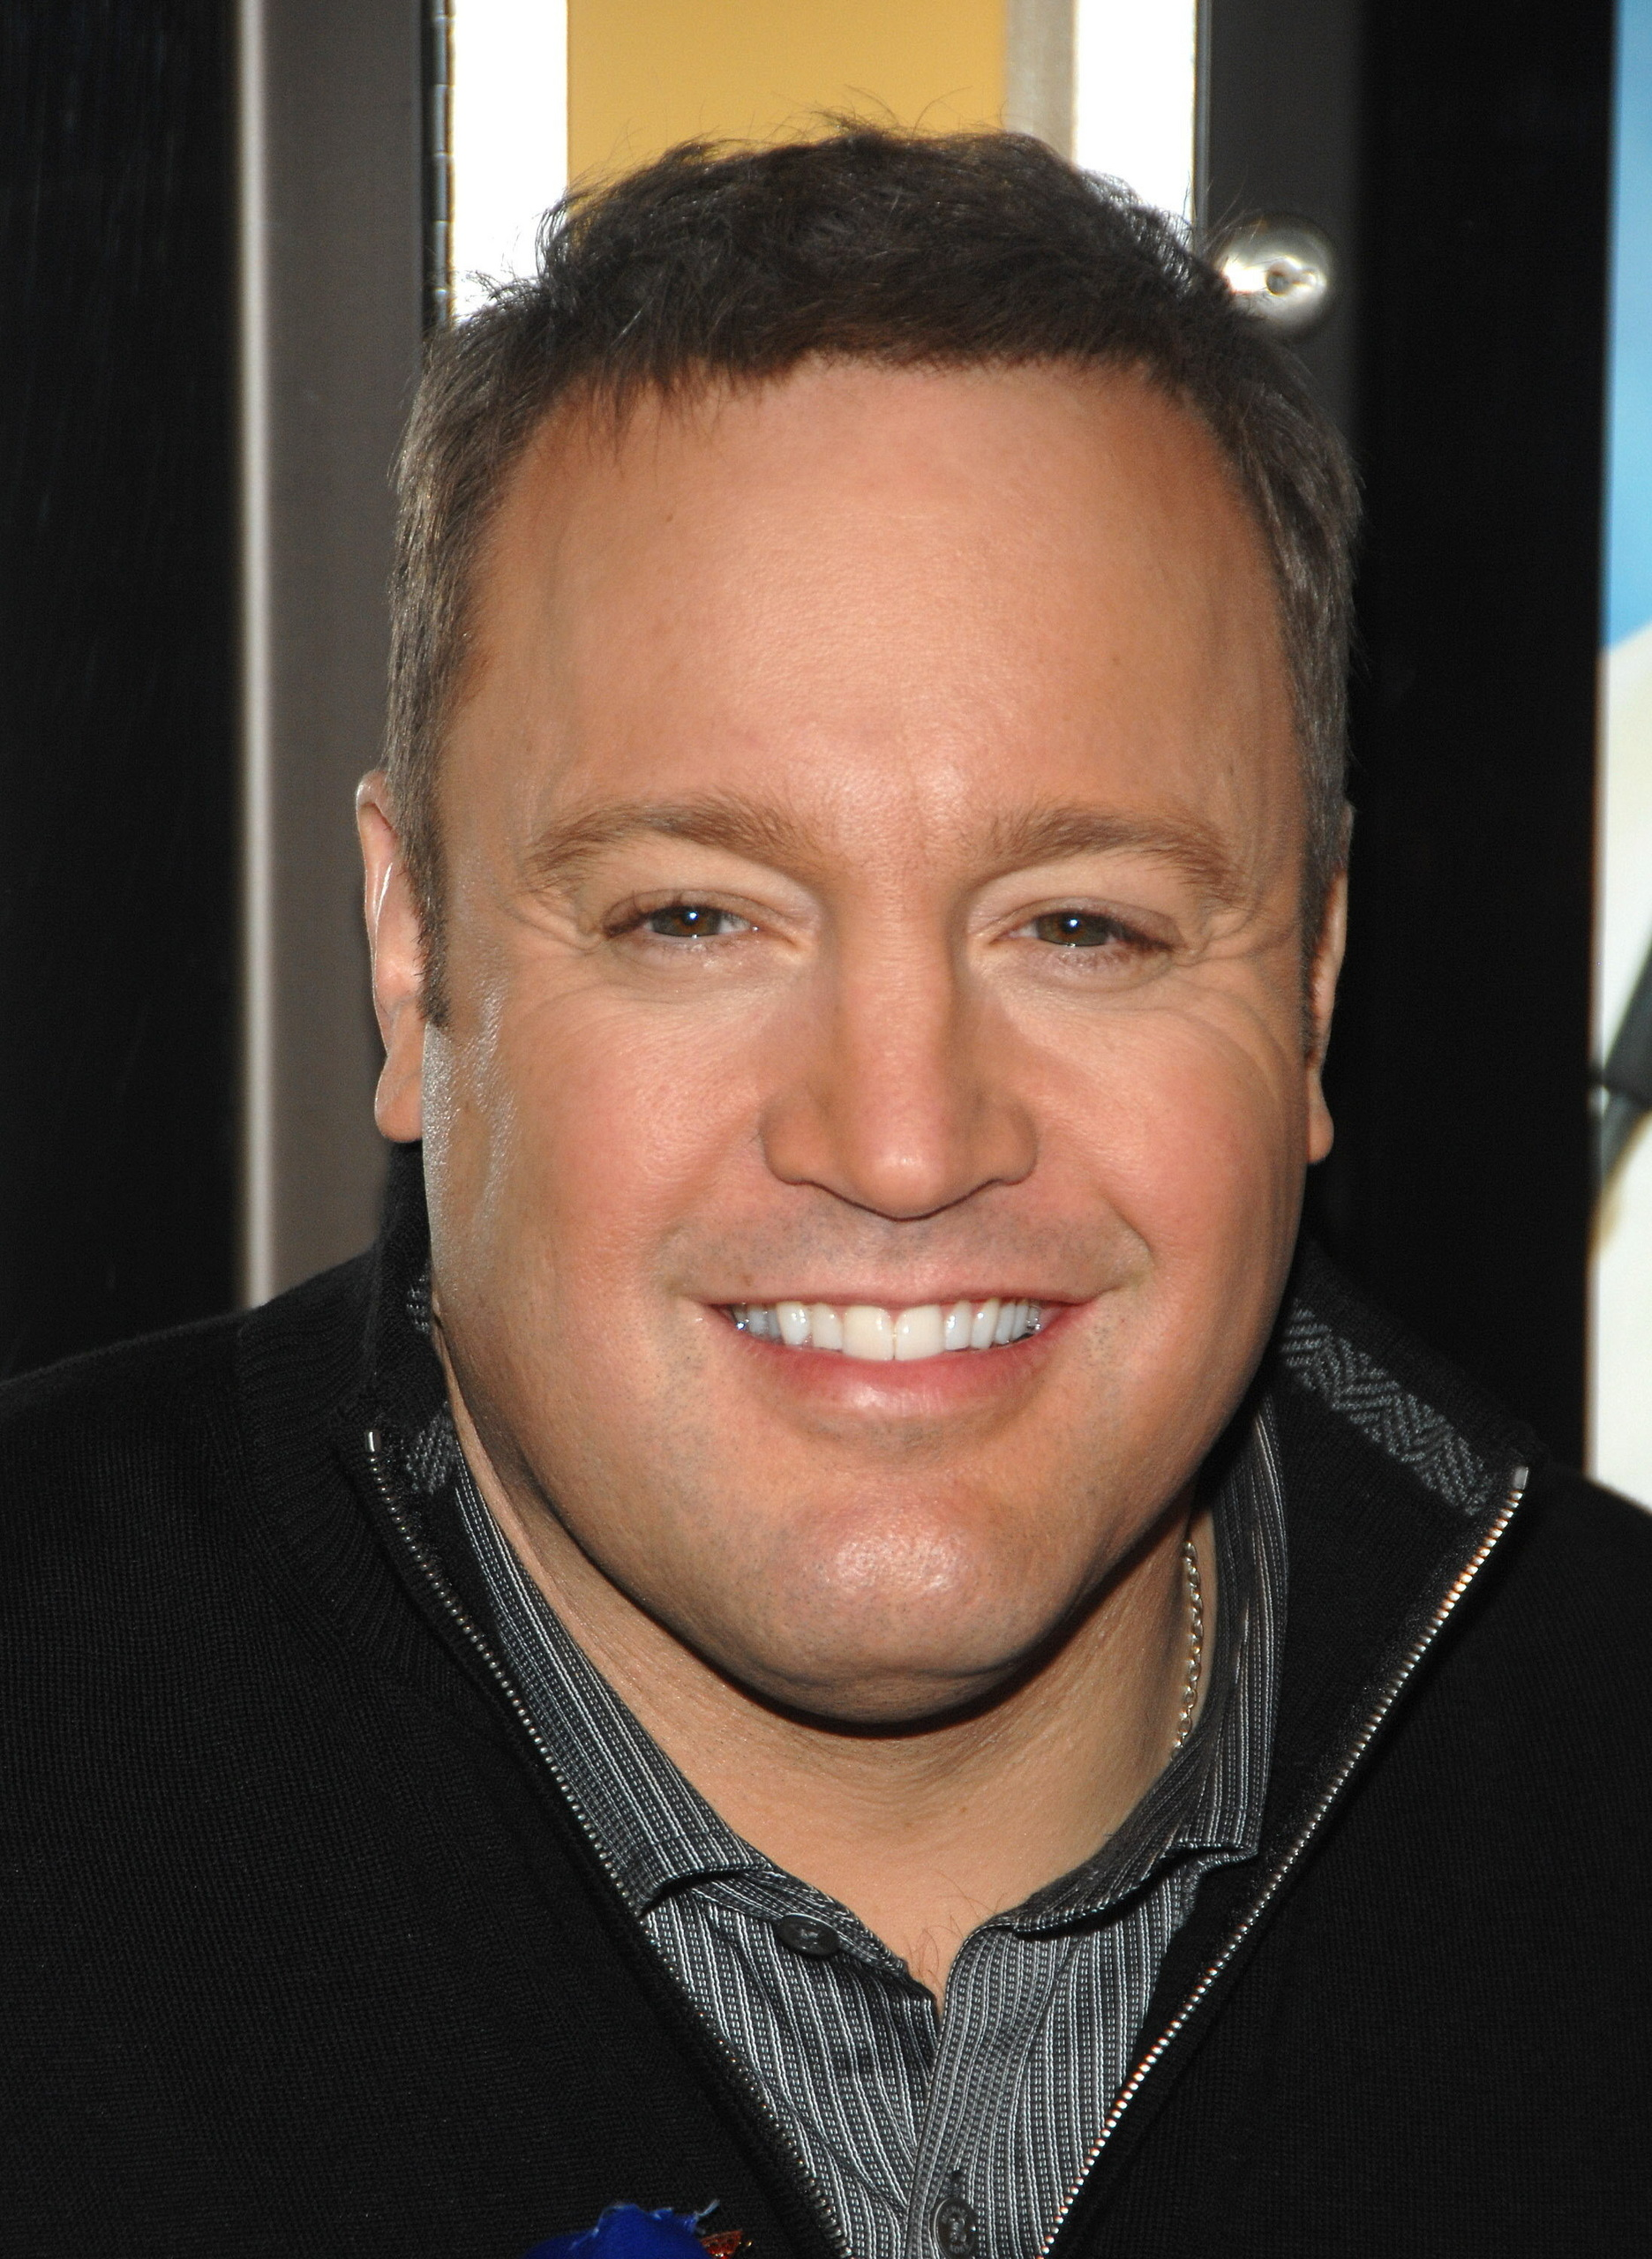 <b>Kevin James</b> images <b>Kevin James</b> HD wallpaper and background photos (20977959) - Kevin-James-kevin-james-20977959-1872-2560